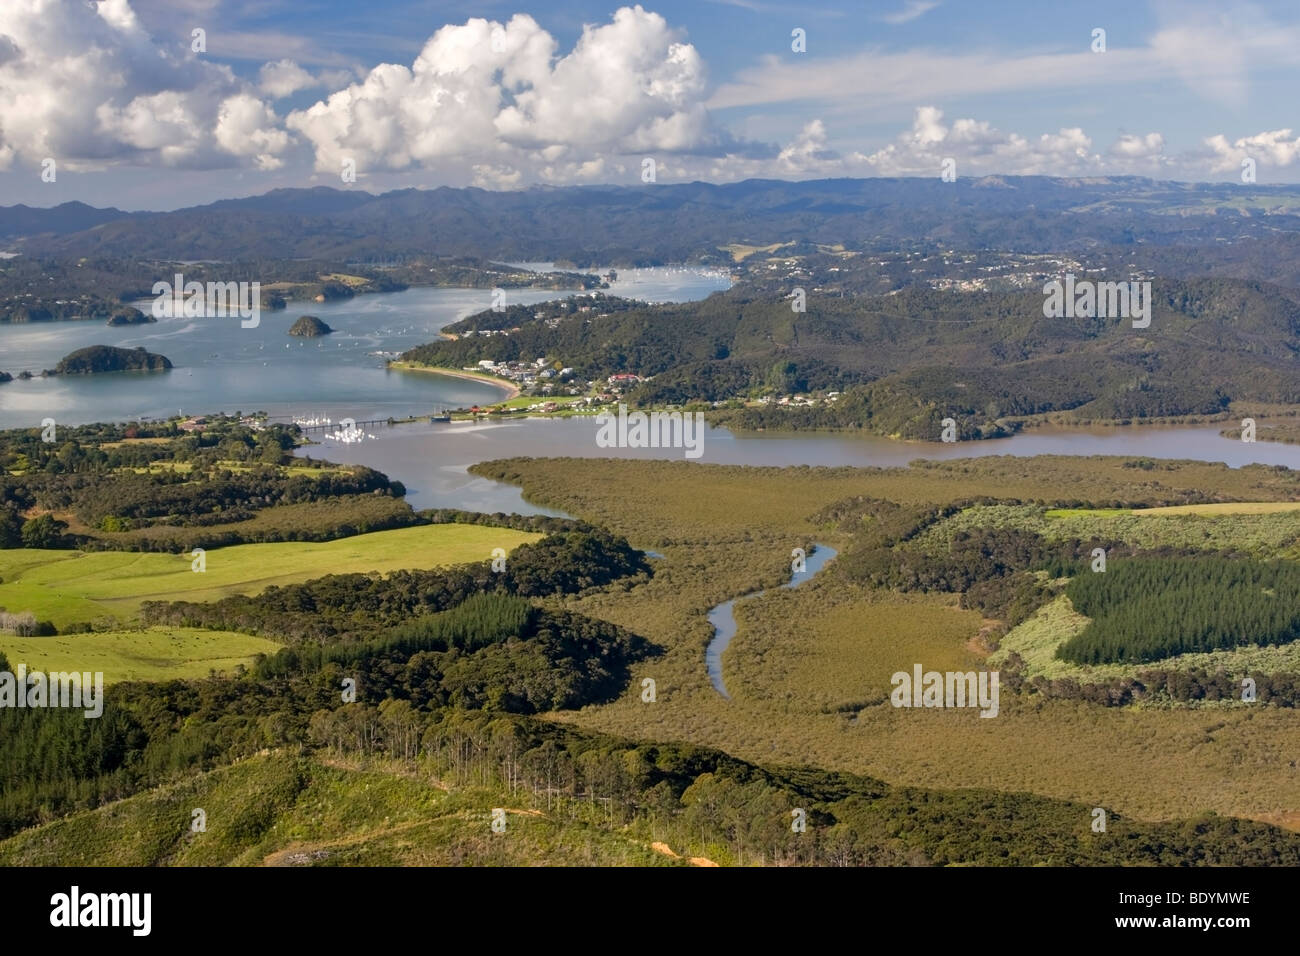 Aerial view of mangrove swamps and logged timber tract near Paihia, New Zealand - Stock Image